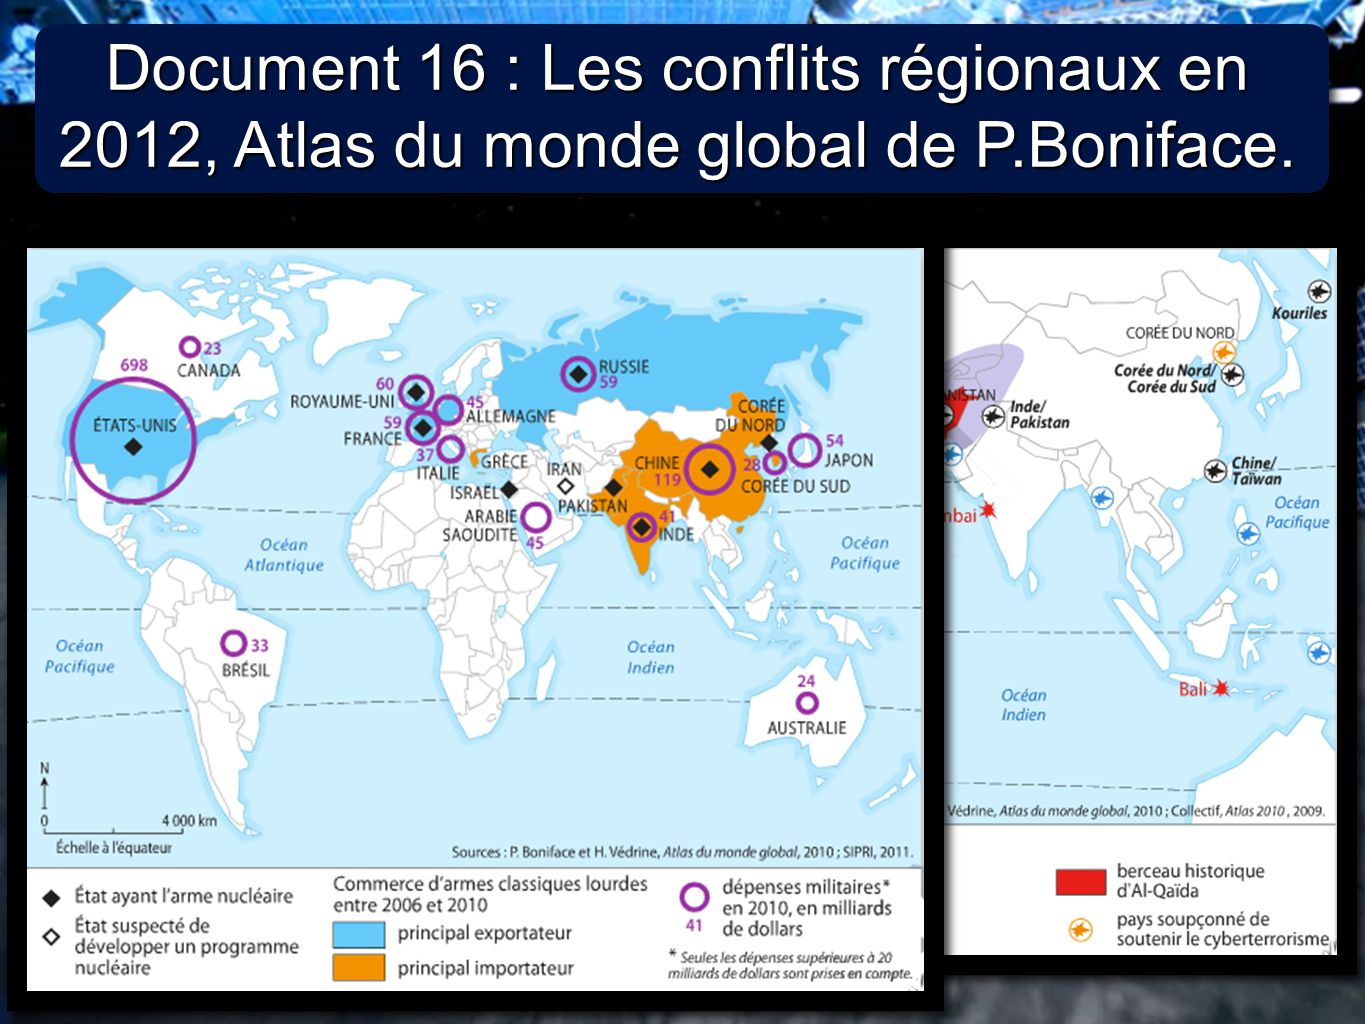 Document 16 : Les conflits régionaux en 2012, Atlas du monde global de P.Boniface.